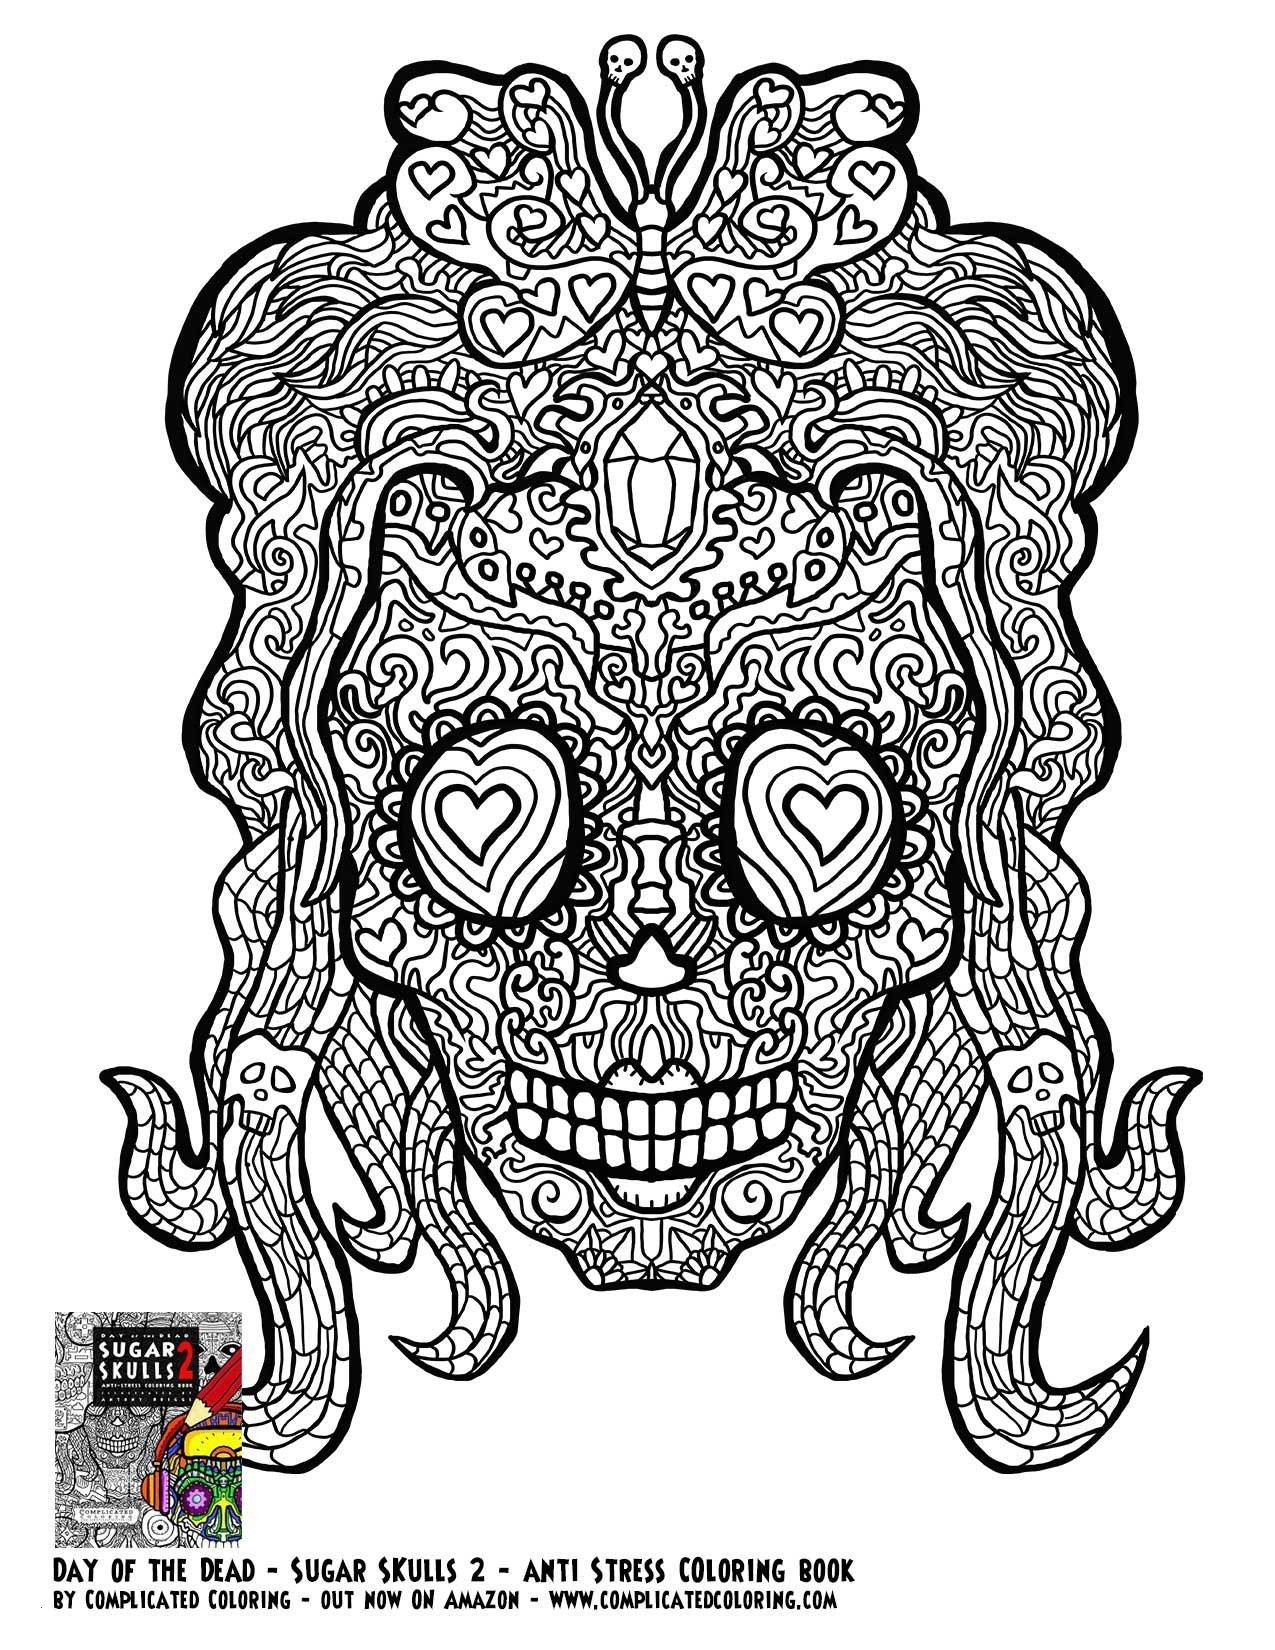 Halloween Skull Coloring Pages  Collection 1b - Save it to your computer